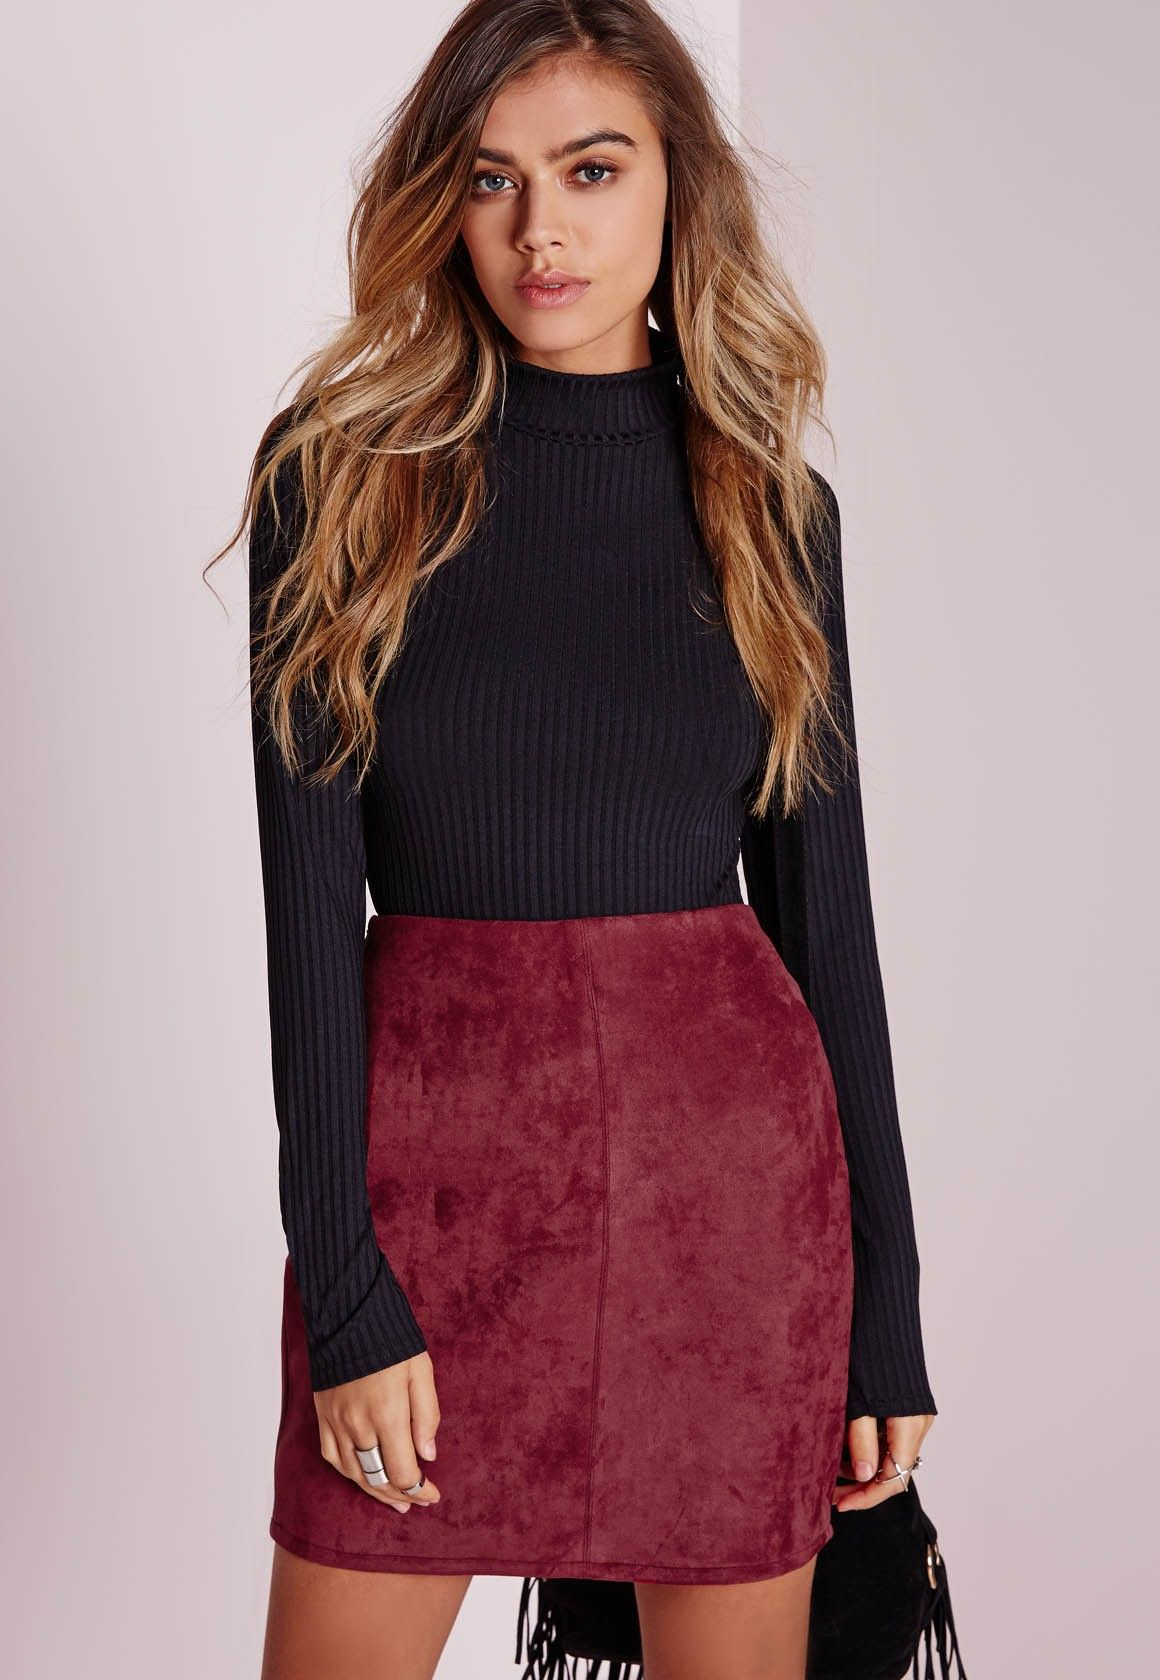 Faux Suede Mini Skirt Burgundy. Find more like this on Trendy Quest. Free  insured shipping on all orders! fd35648b218e